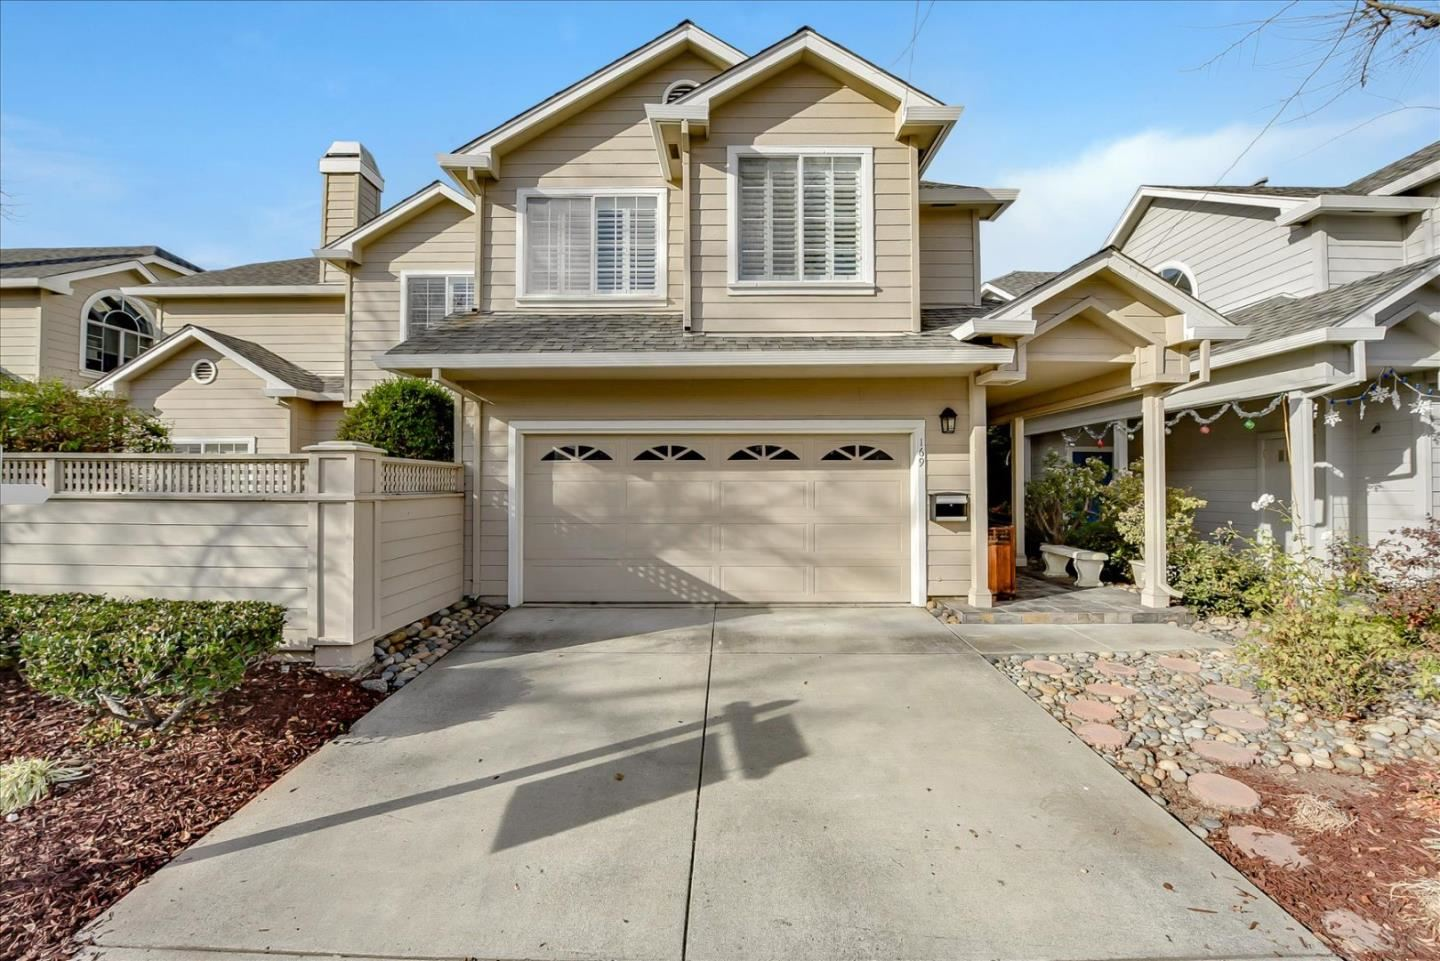 Photo for 169 Page ST, CAMPBELL, CA 95008 (MLS # ML81823872)